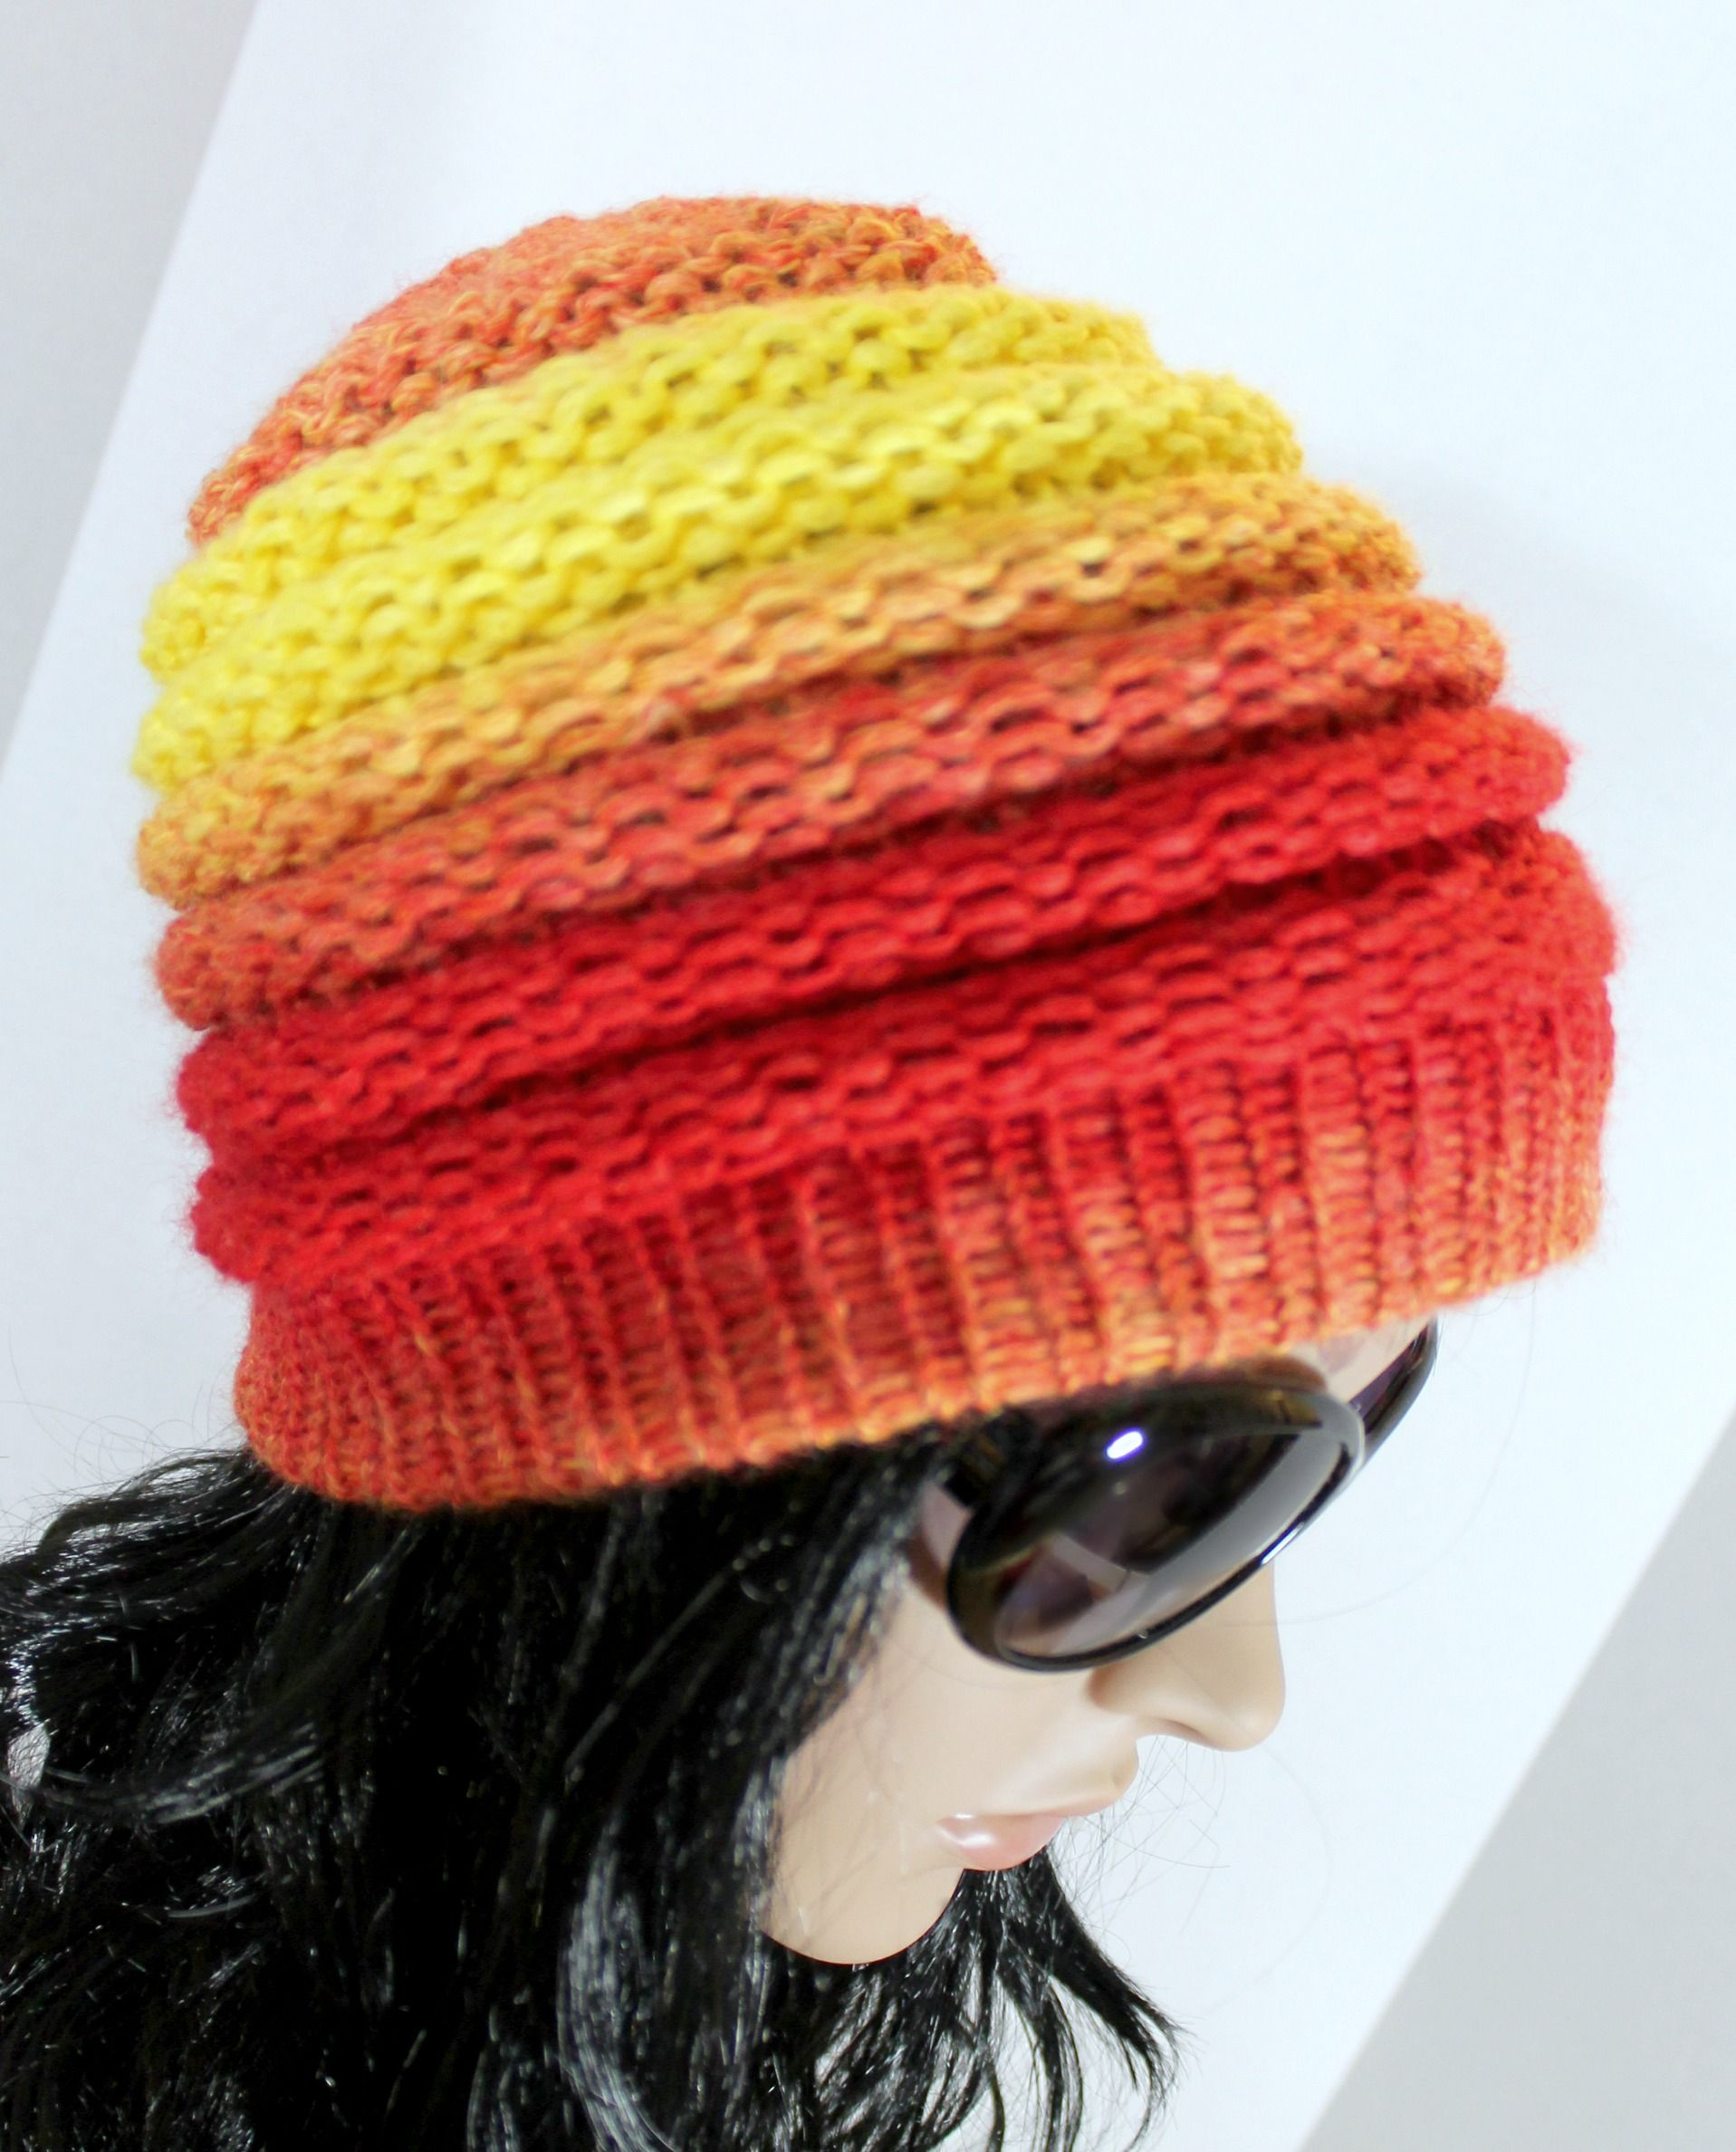 Ombre beanie pattern free loom knit hat pattern for extra large ombre beanie pattern free loom knit hat pattern for extra large 40 41 peg bankloansurffo Gallery